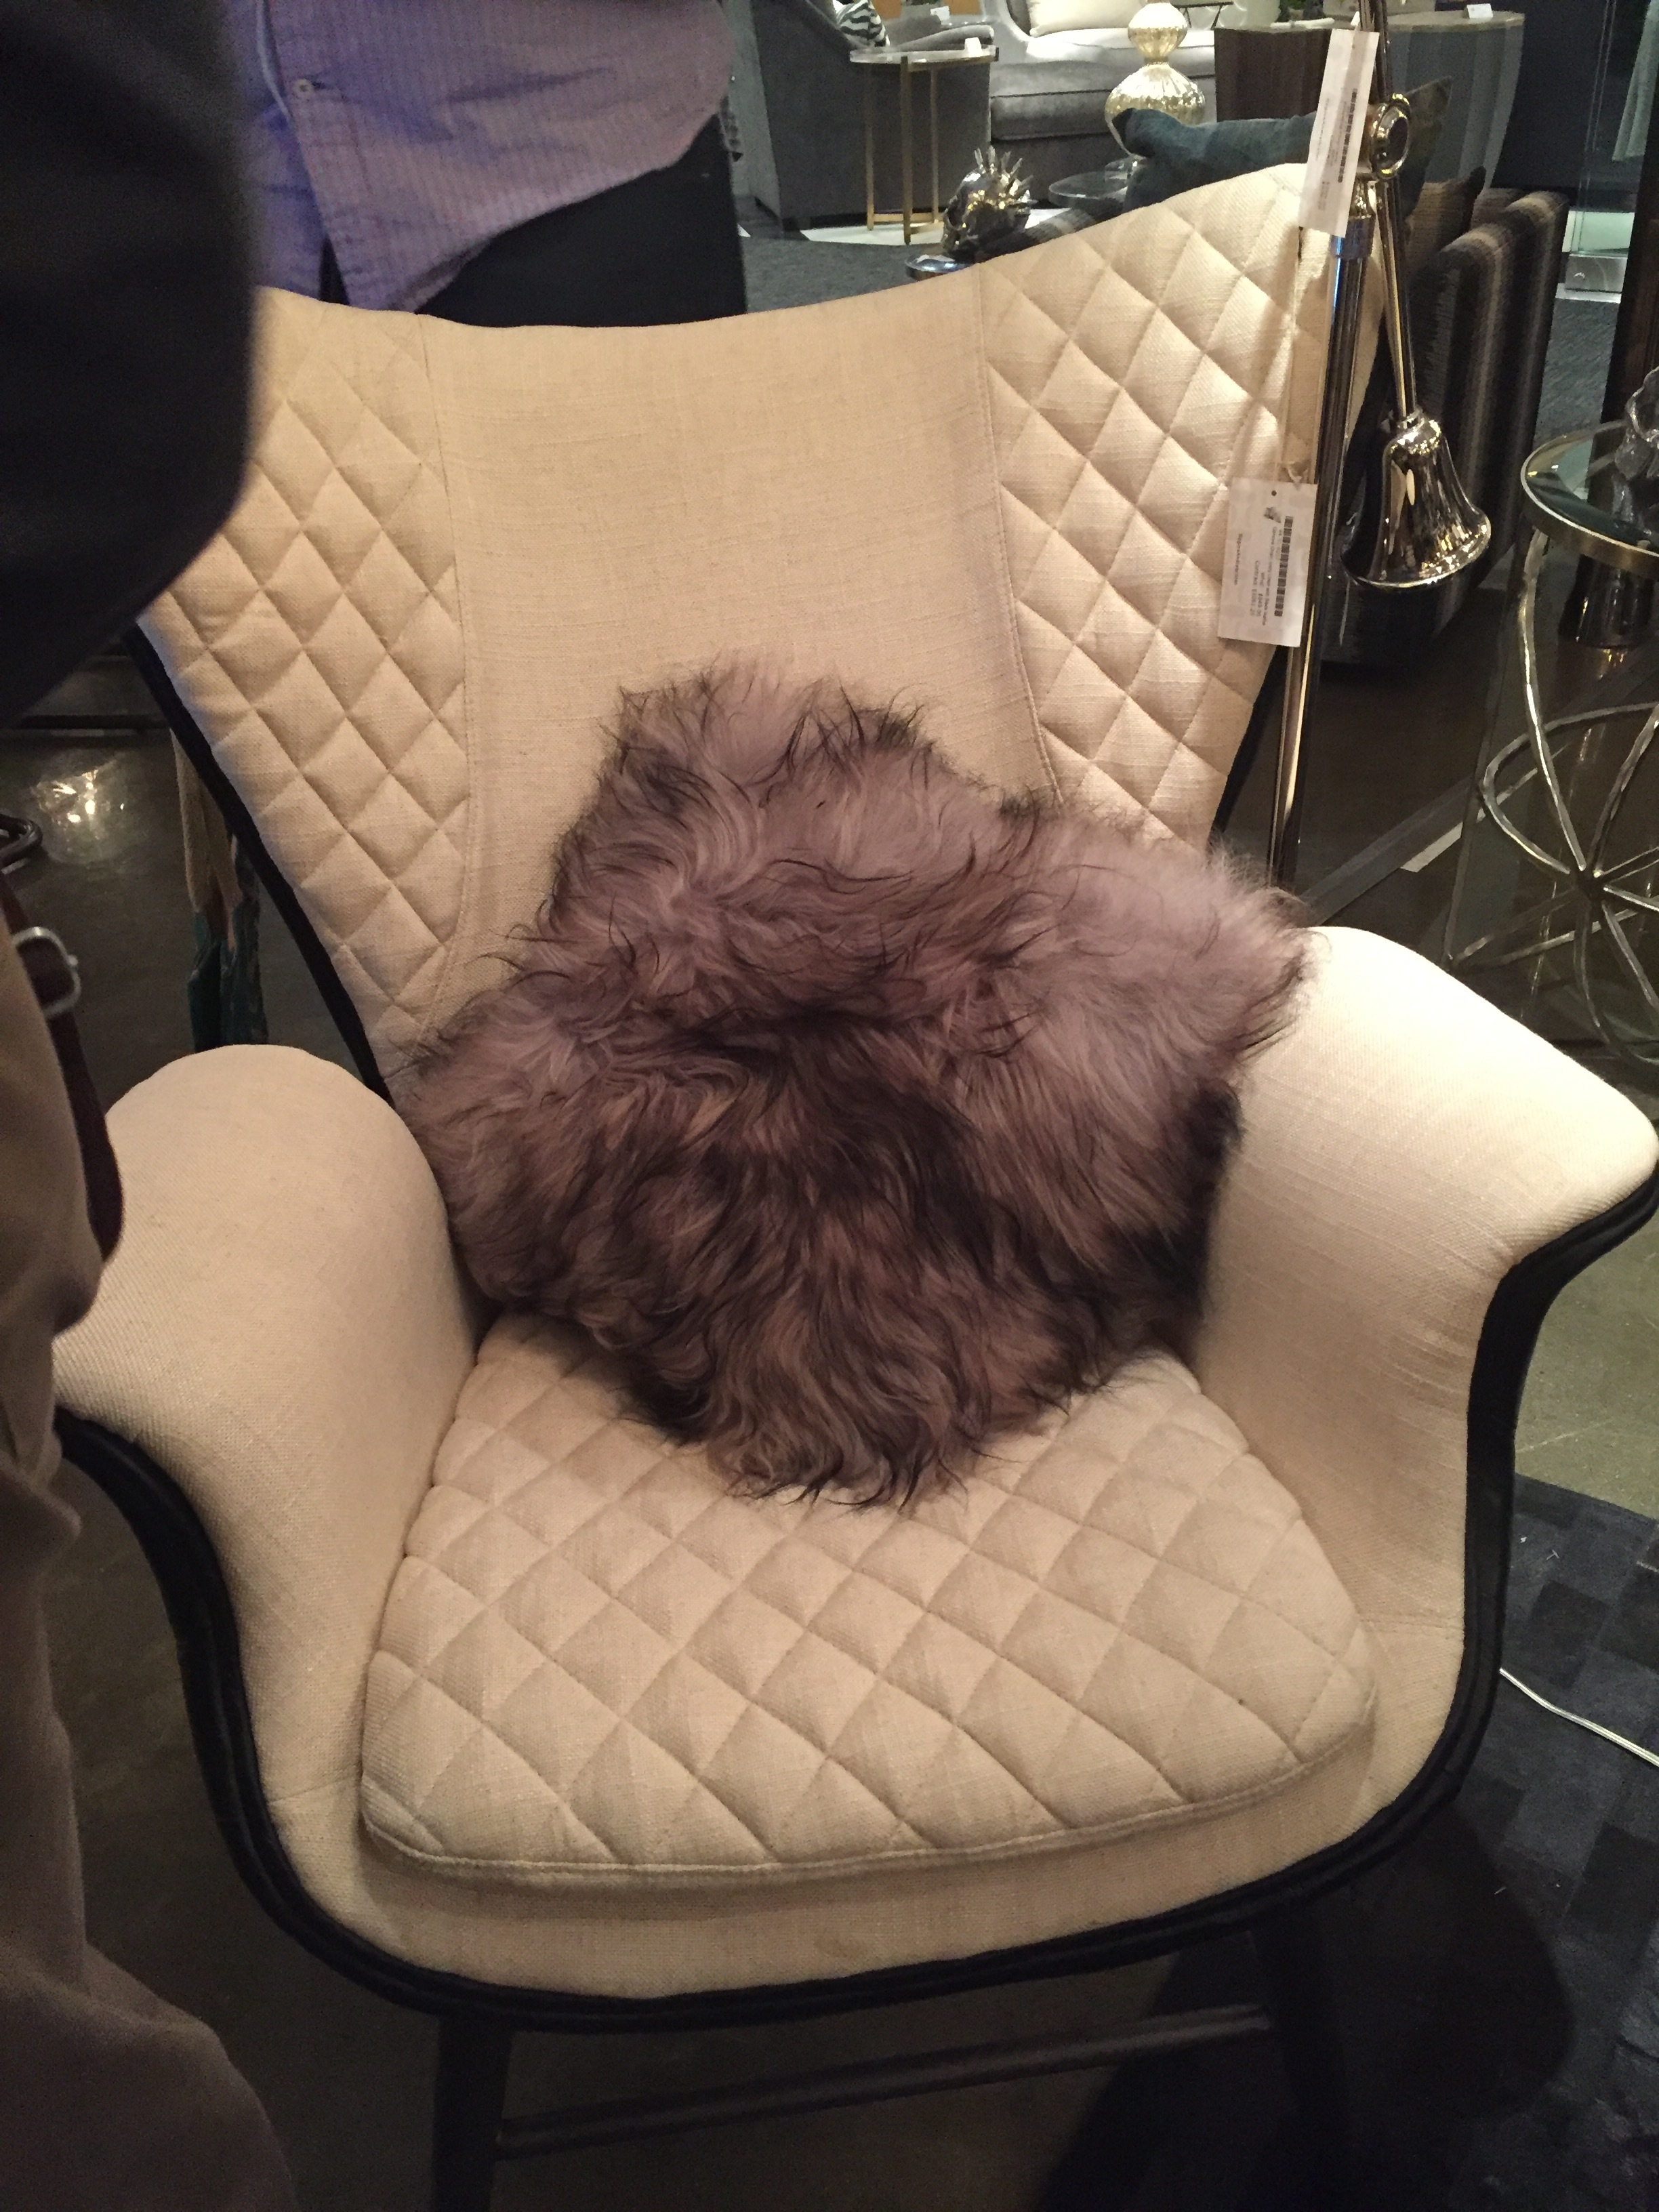 Not your typical tufting, but boy does it make a statement! Love the elements of this chair and fur pillow from Regina Andrew to add the drama necessary for the season.